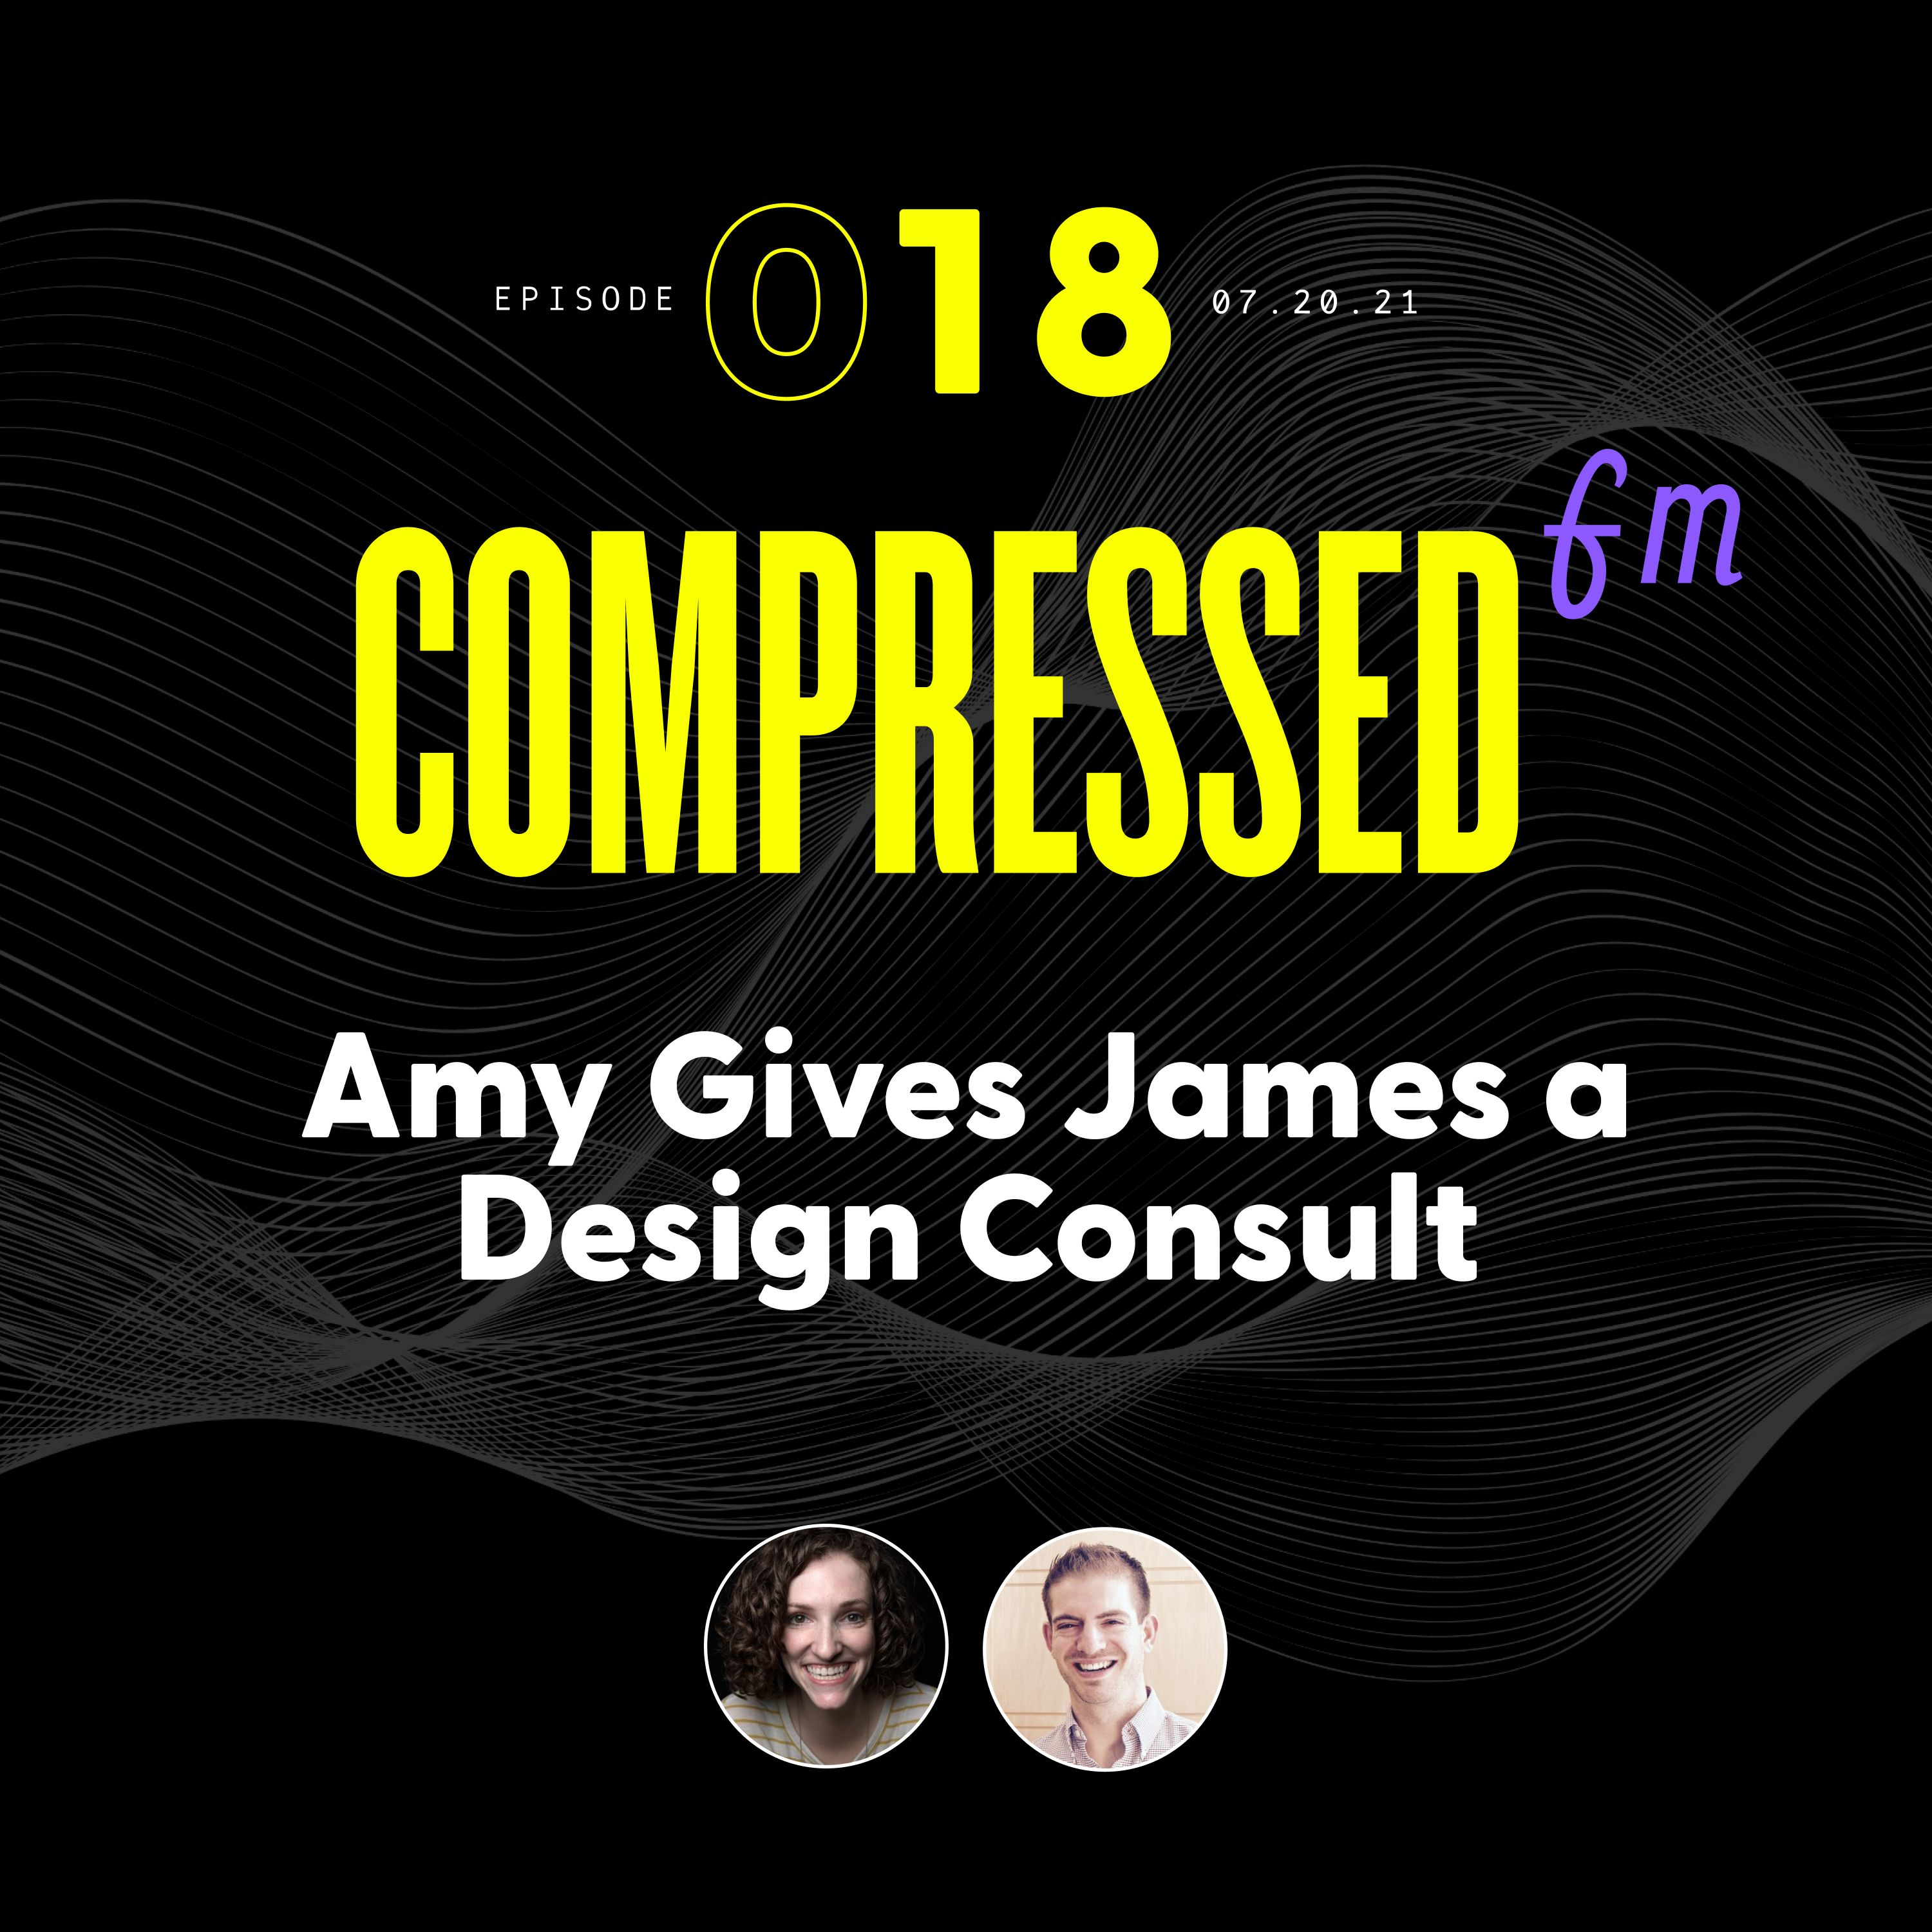 Amy Gives James a Design Consult